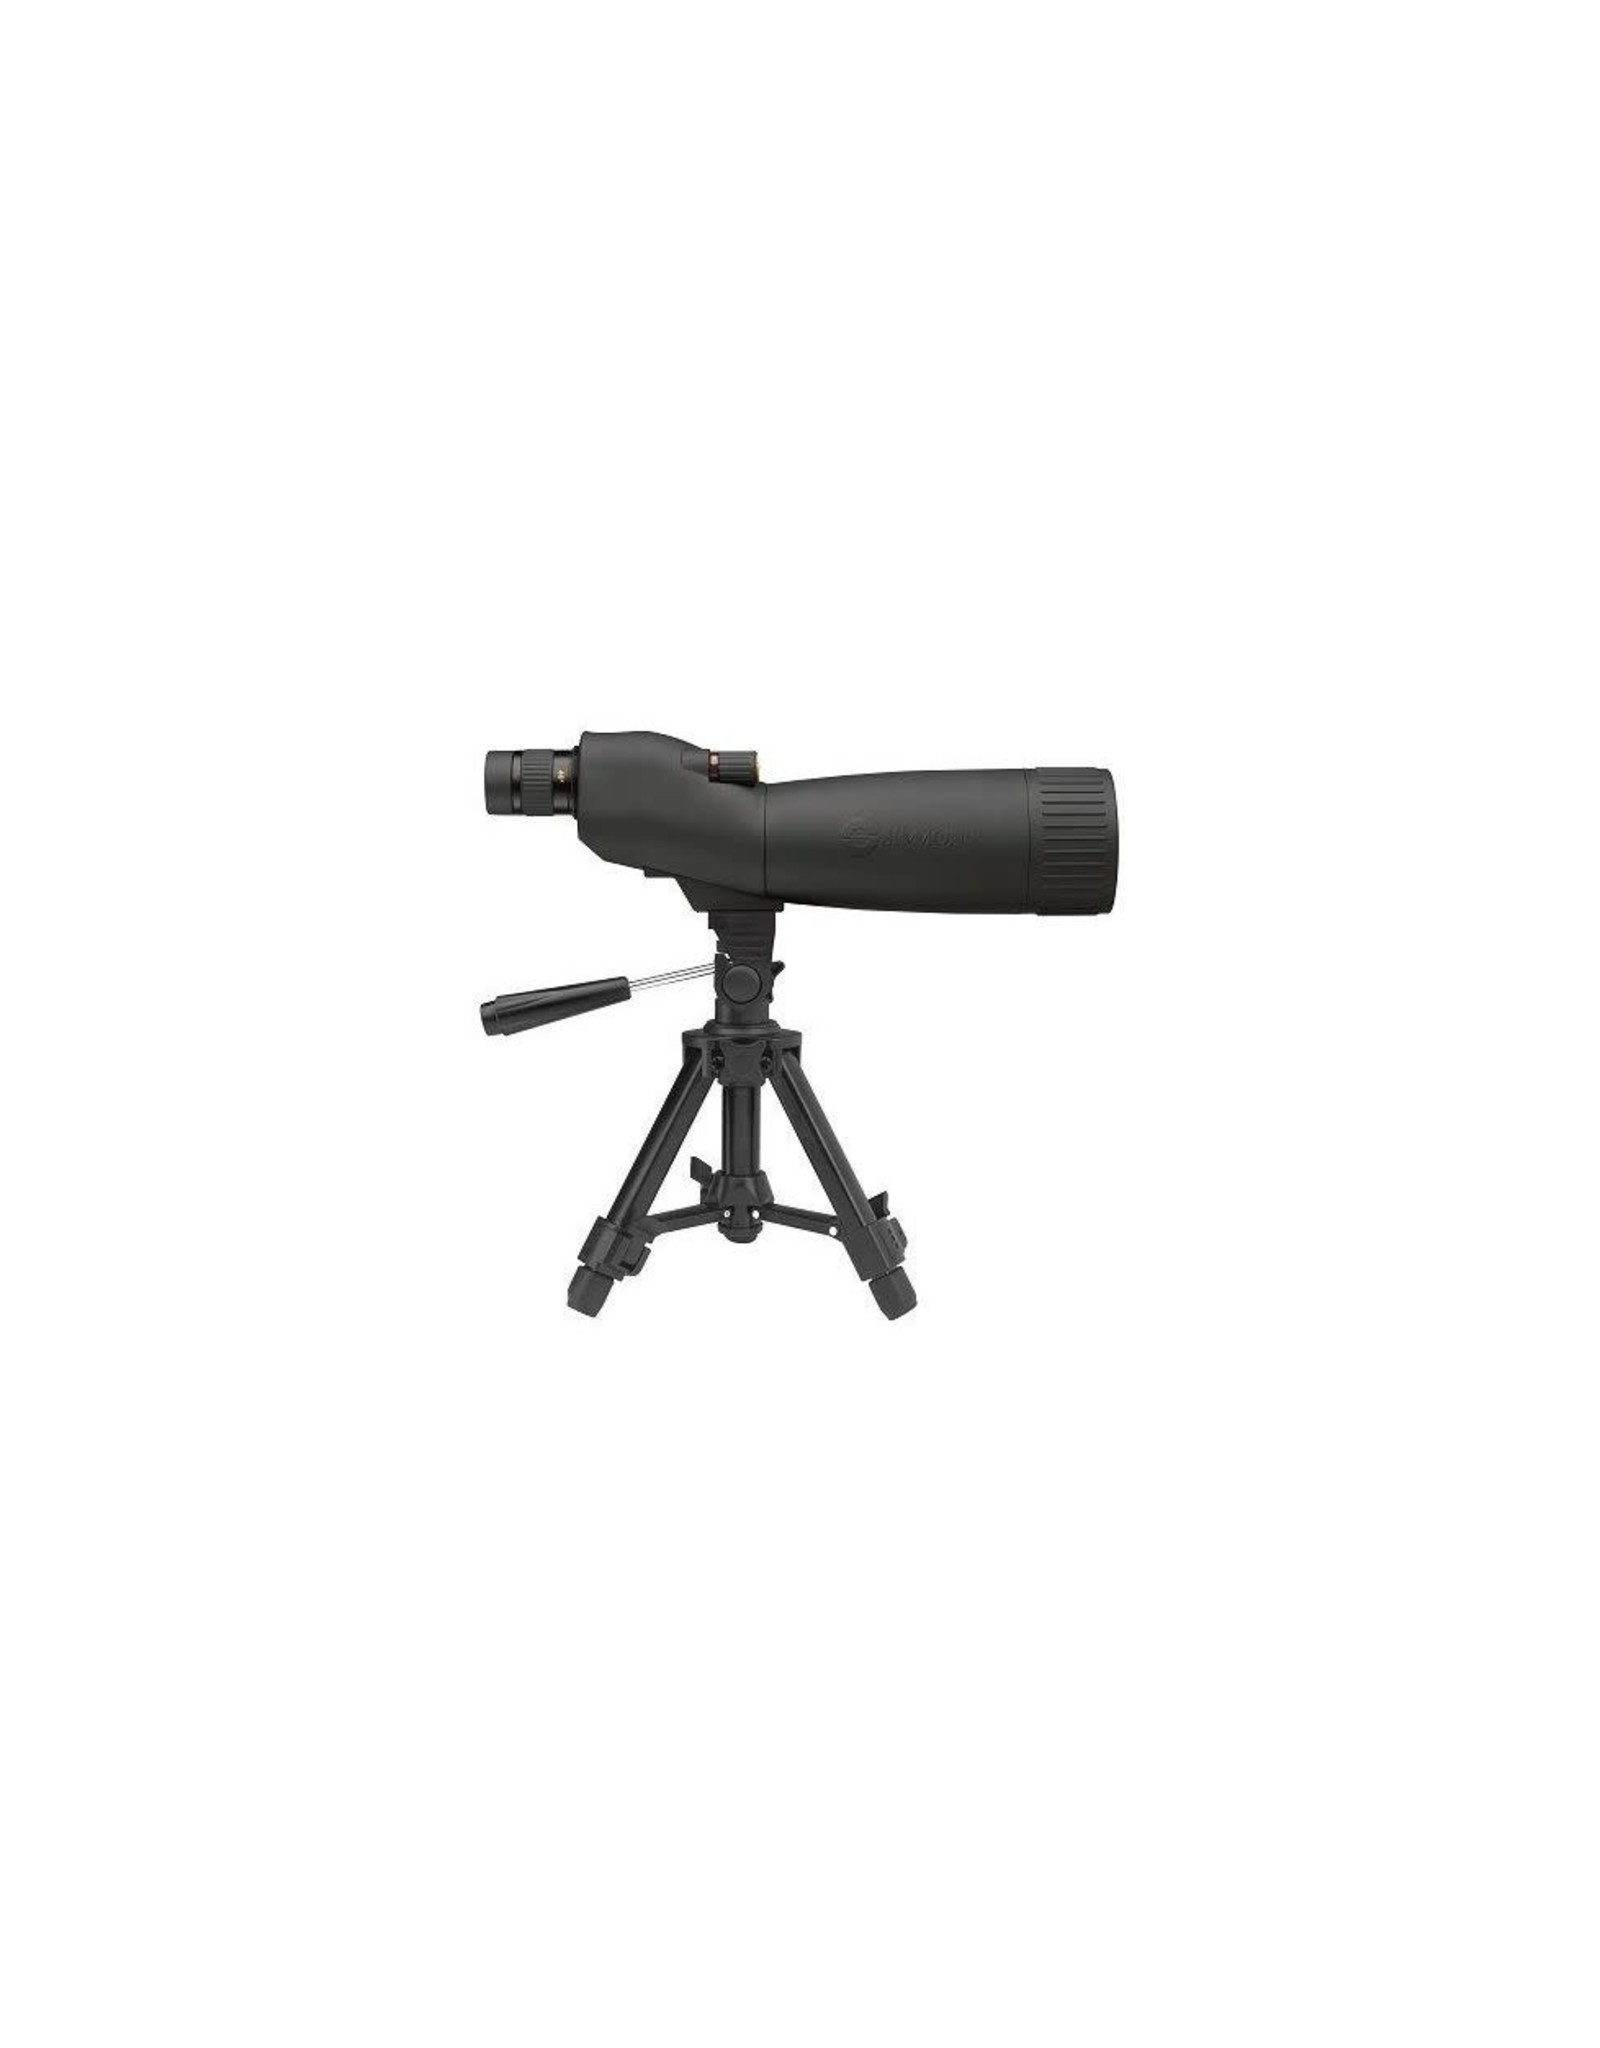 SIMMONS Simmons Venture 20-60x60mm Spotting Scope